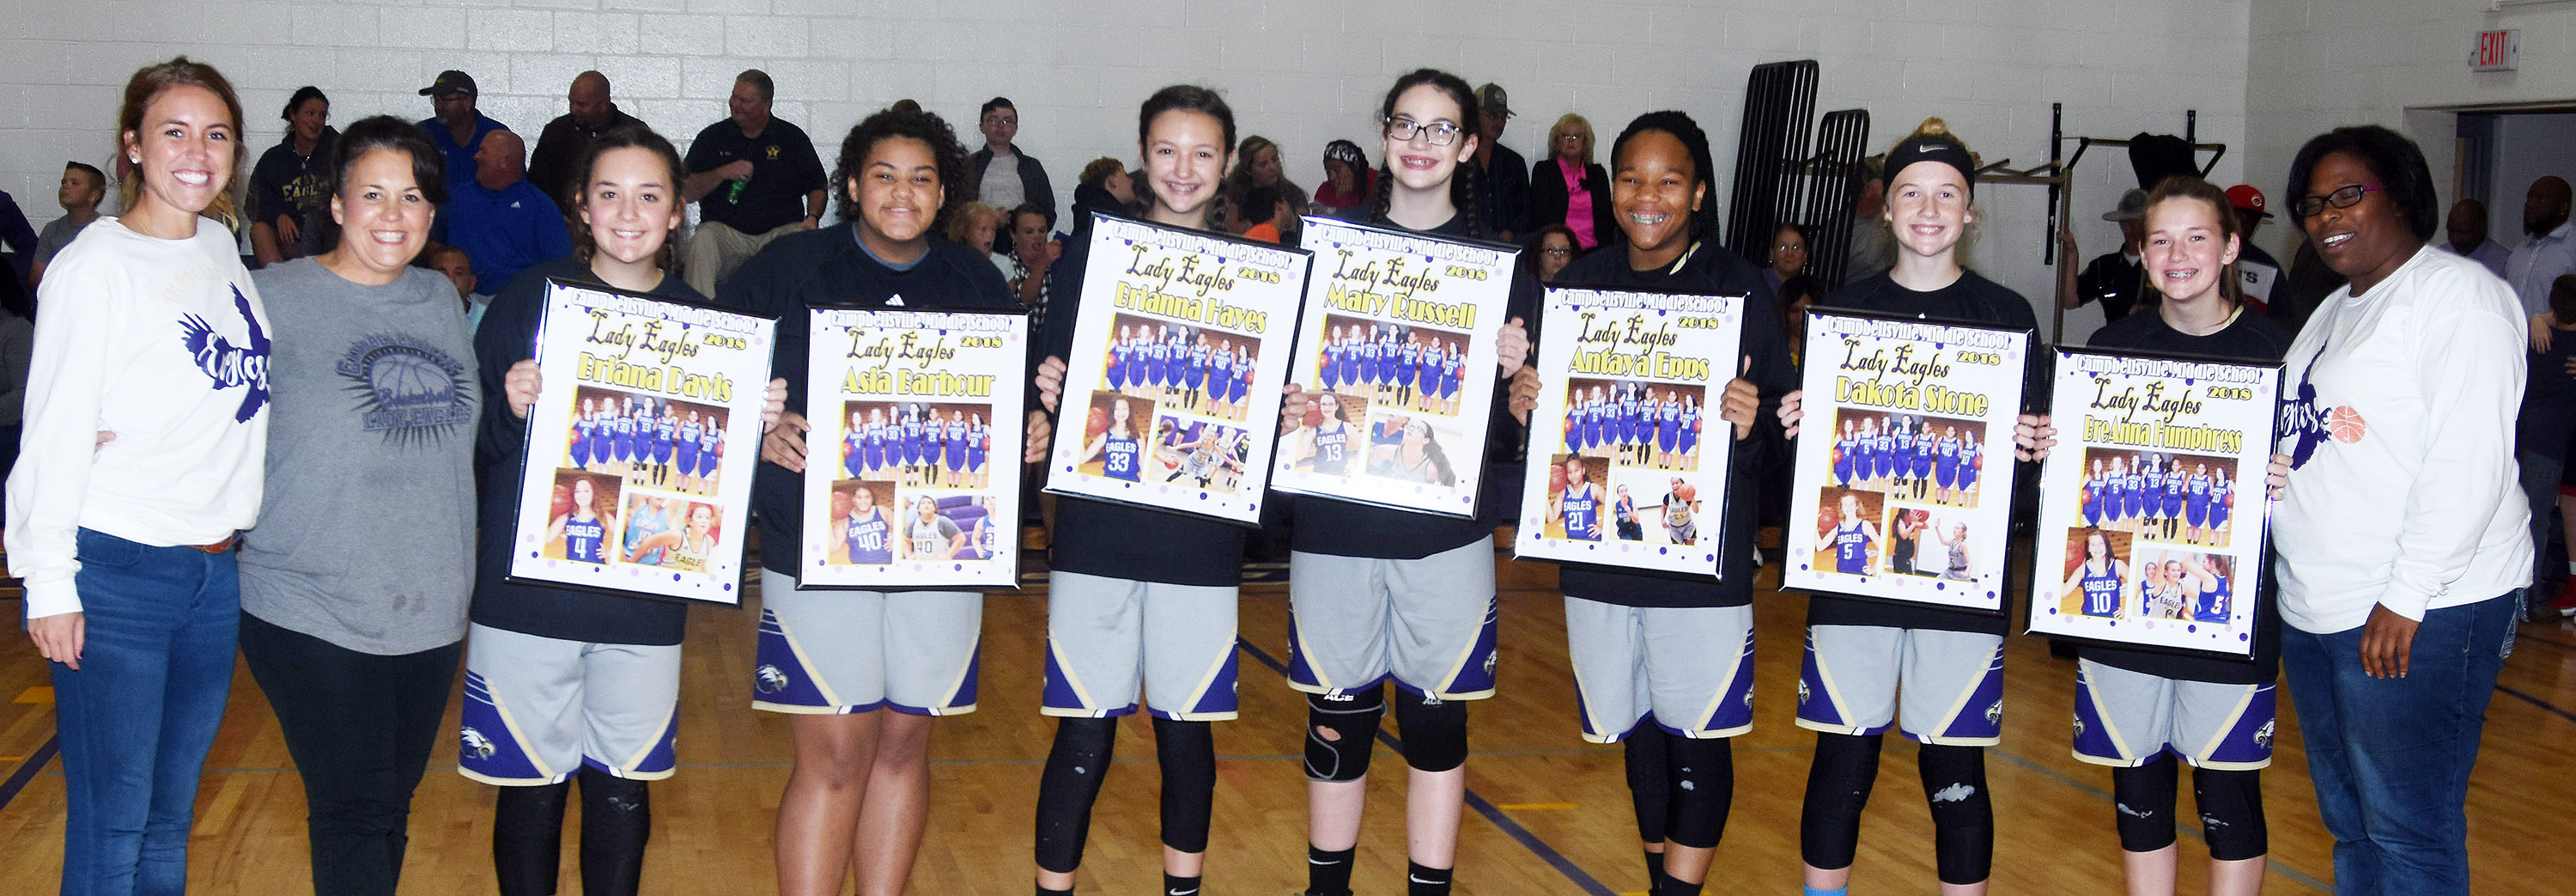 CMS girls' basketball eighth-grade players are honored. From left are assistant coaches LeeAnn Grider and Kathy England, Briana Davis, Asia Barbour, Brianna Hayes, Mary Russell, Antaya Epps, Dakota Slone, BreAnna Humphress and head coach Tiarra Cecil.